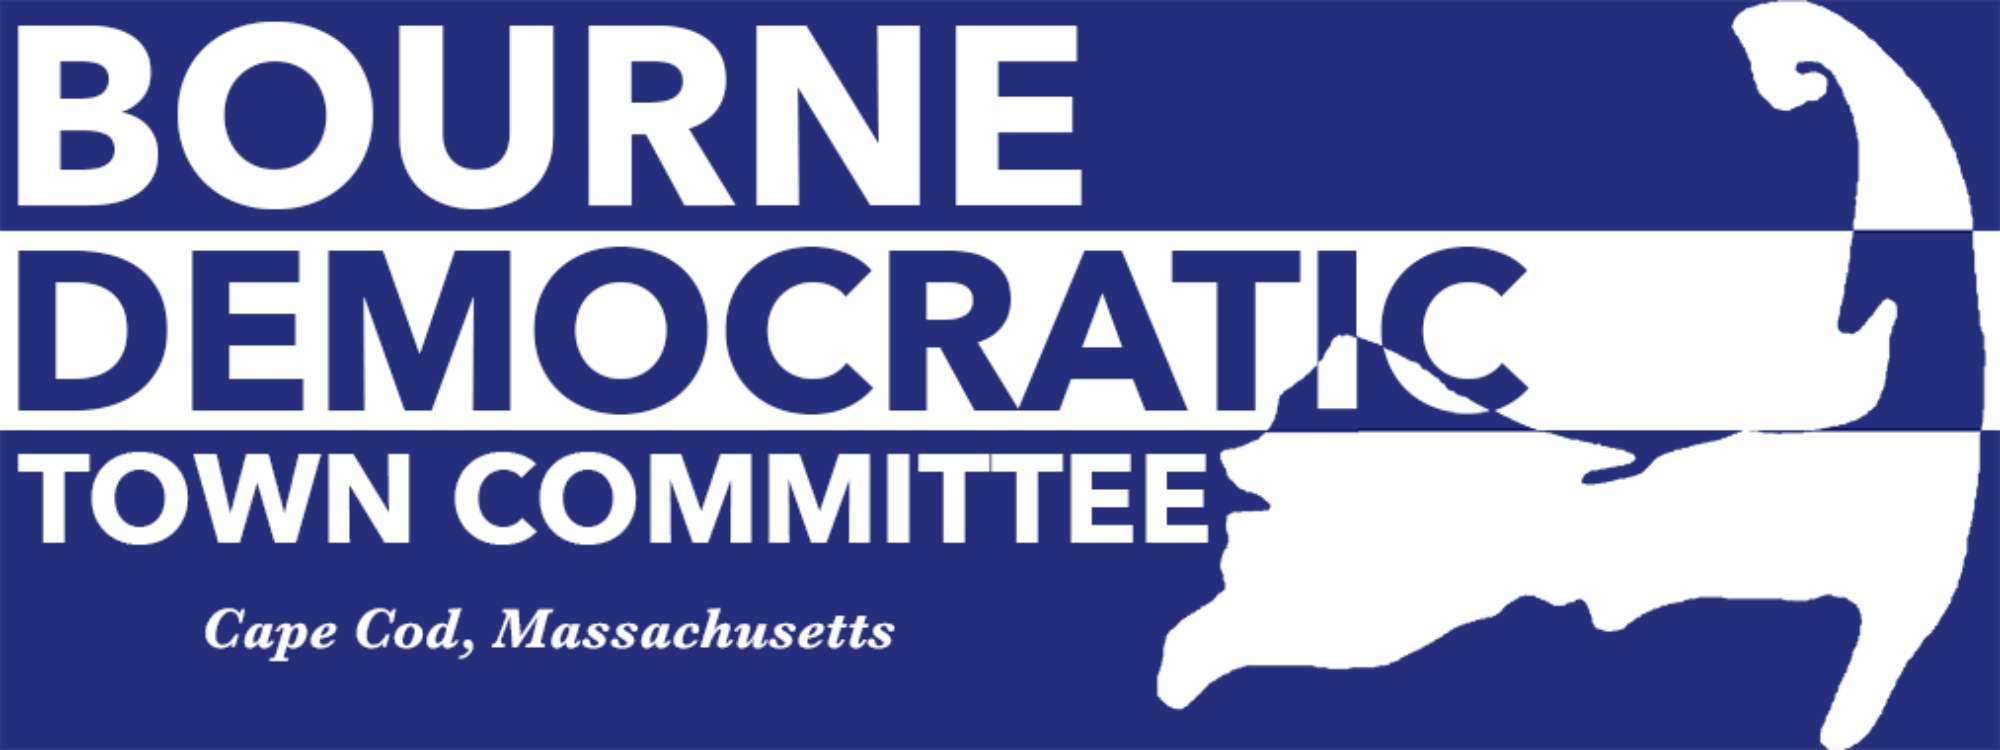 Bourne Democratic Town Committee